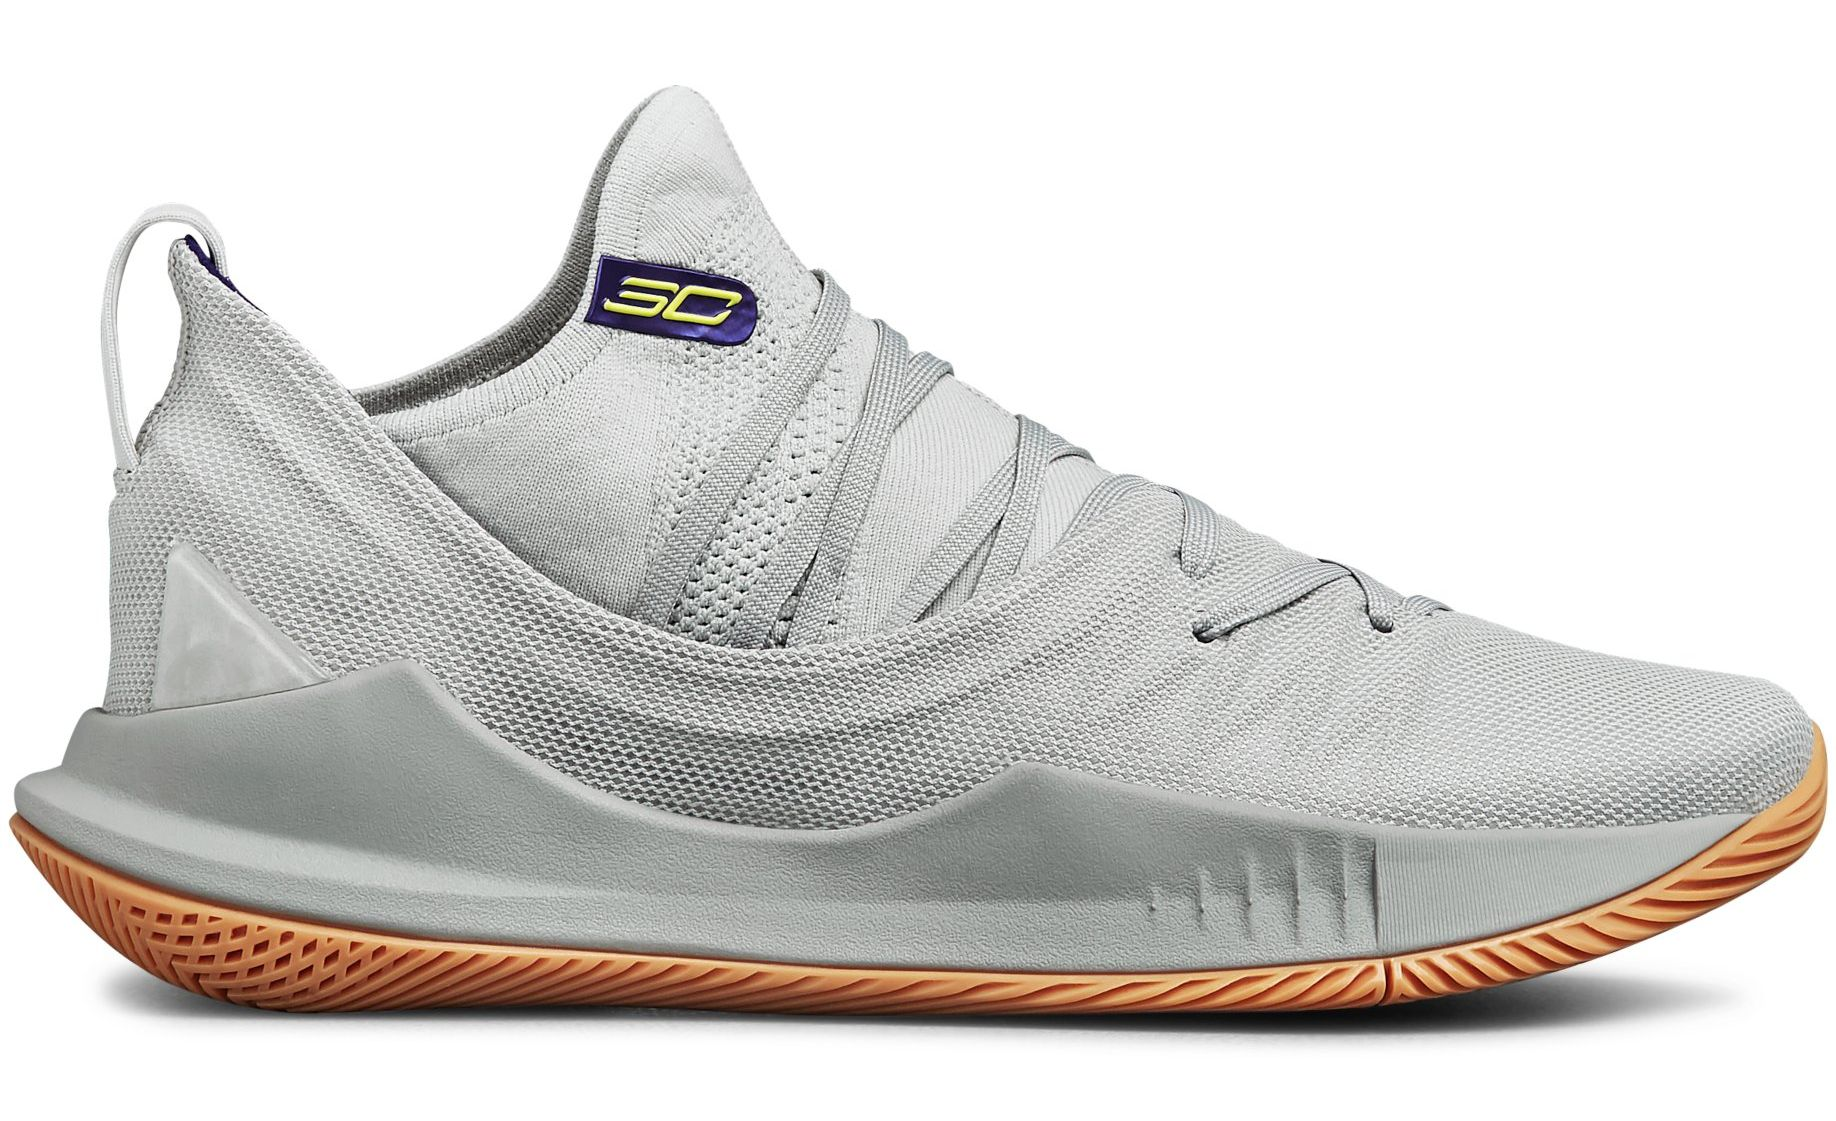 02a51d4c5083 Why Steph Curry Got His Under Armour Sneakers Listed in the Girls ...